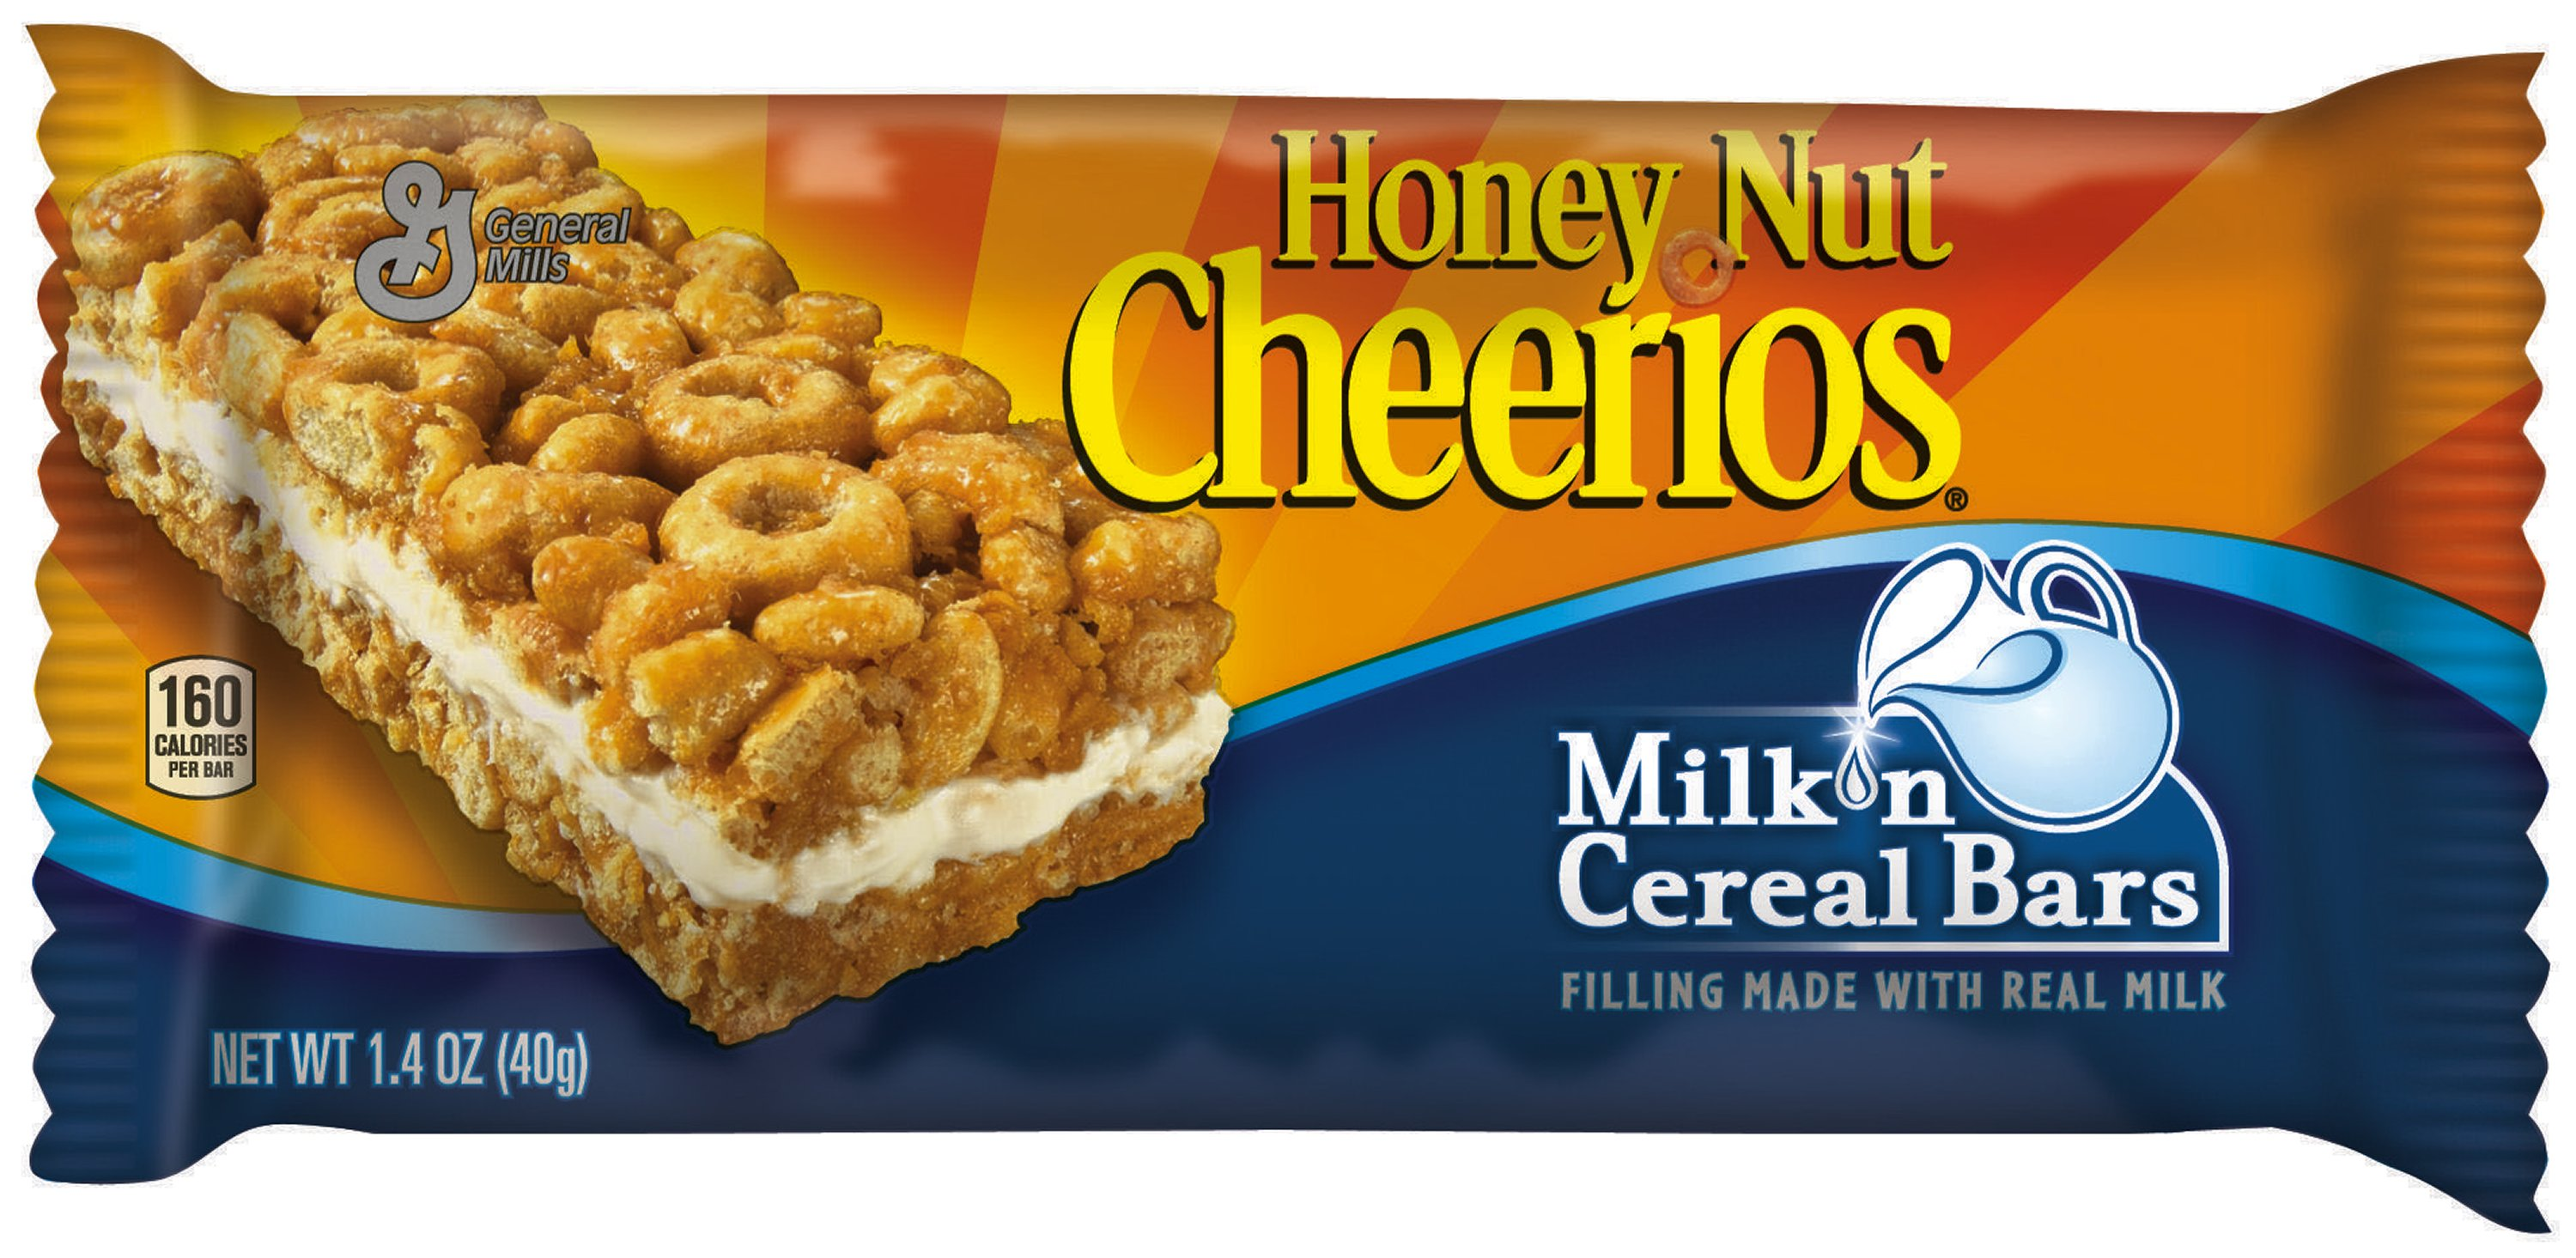 Milk n cereal bars honey nut cheerios 16oz 12ct general mills related resources ccuart Choice Image